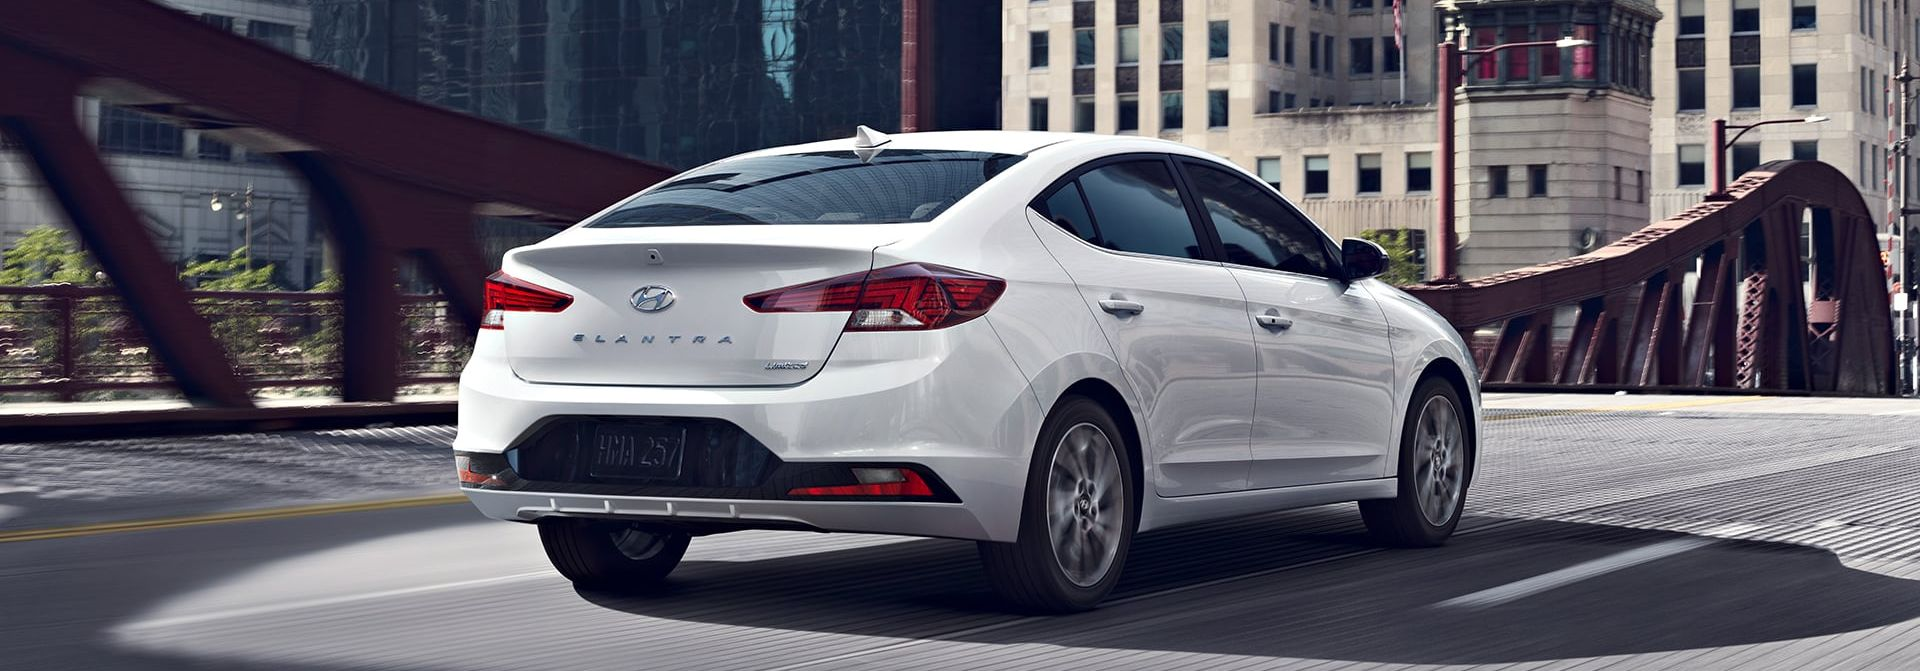 2019 Hyundai Elantra Leasing Near Washington Dc Pohanka Hyundai